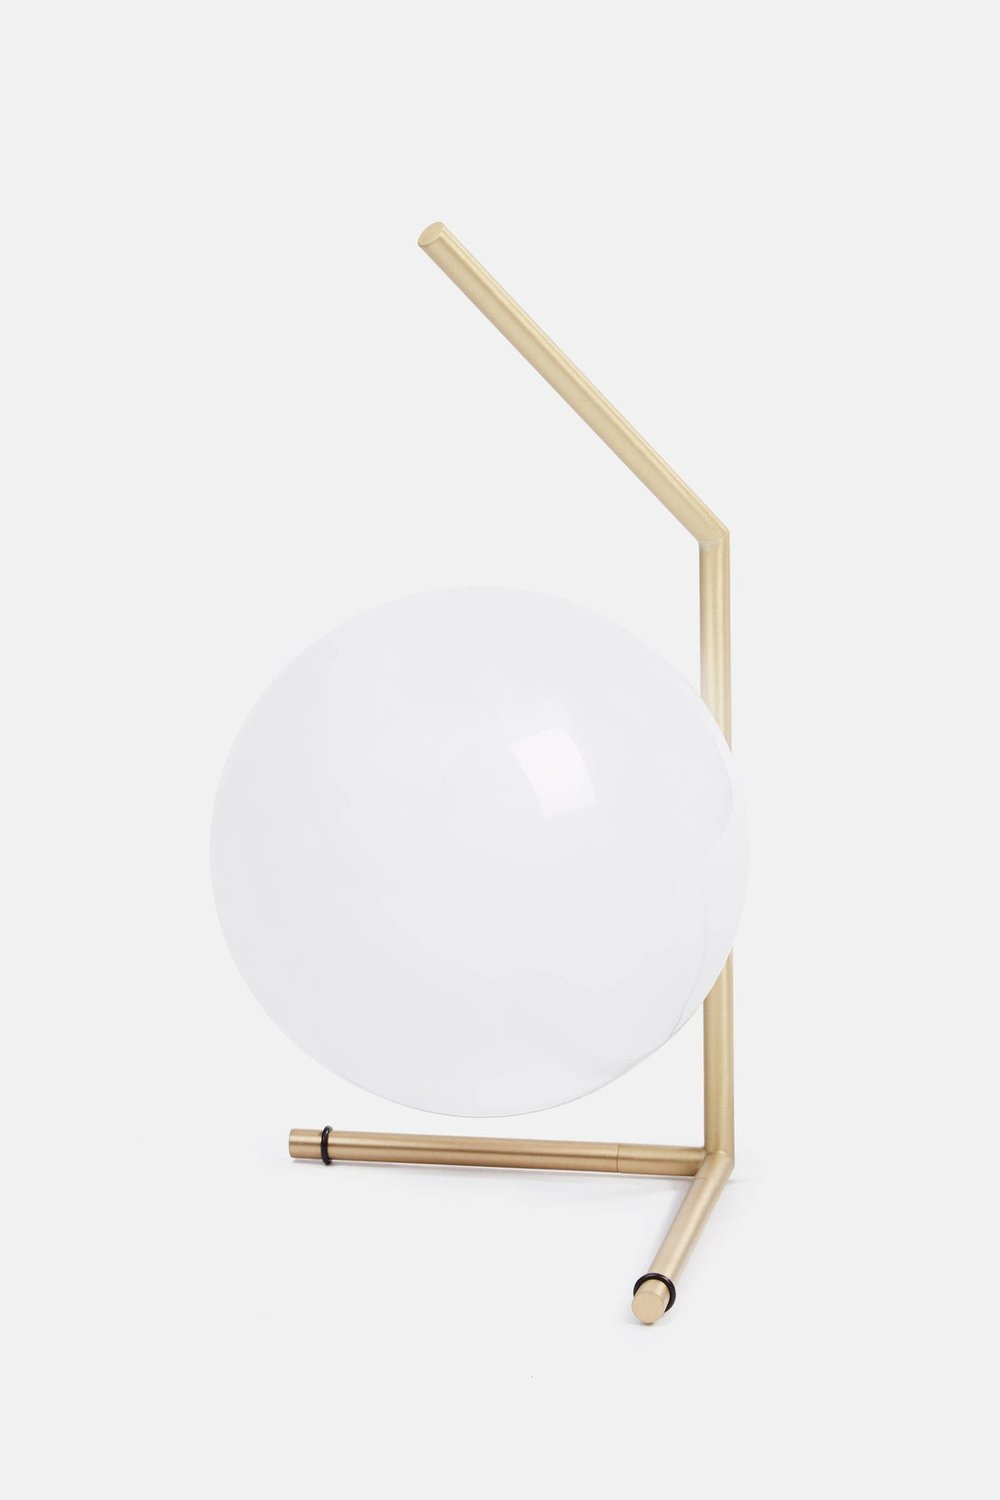 michael anastassiades table lamp  Brb swooning over this lamp